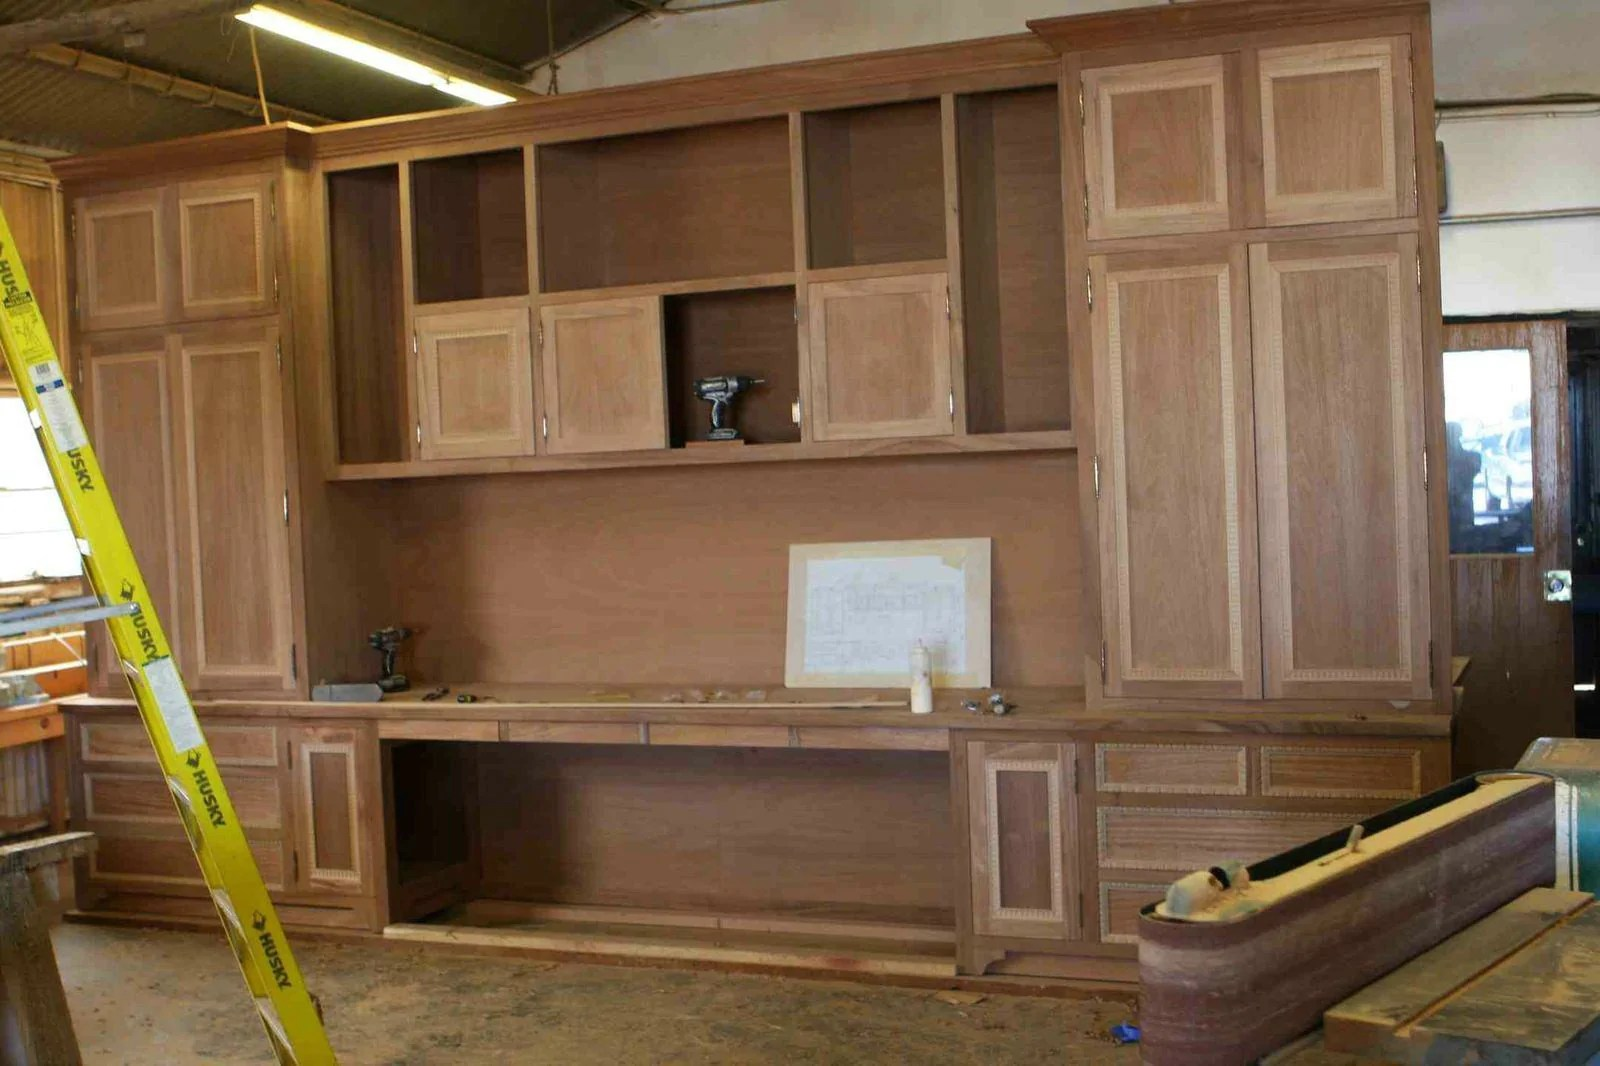 Home Office Cabinets Custom Builtin Mahogany Wood Home Office Cabinets Mortise Tenon